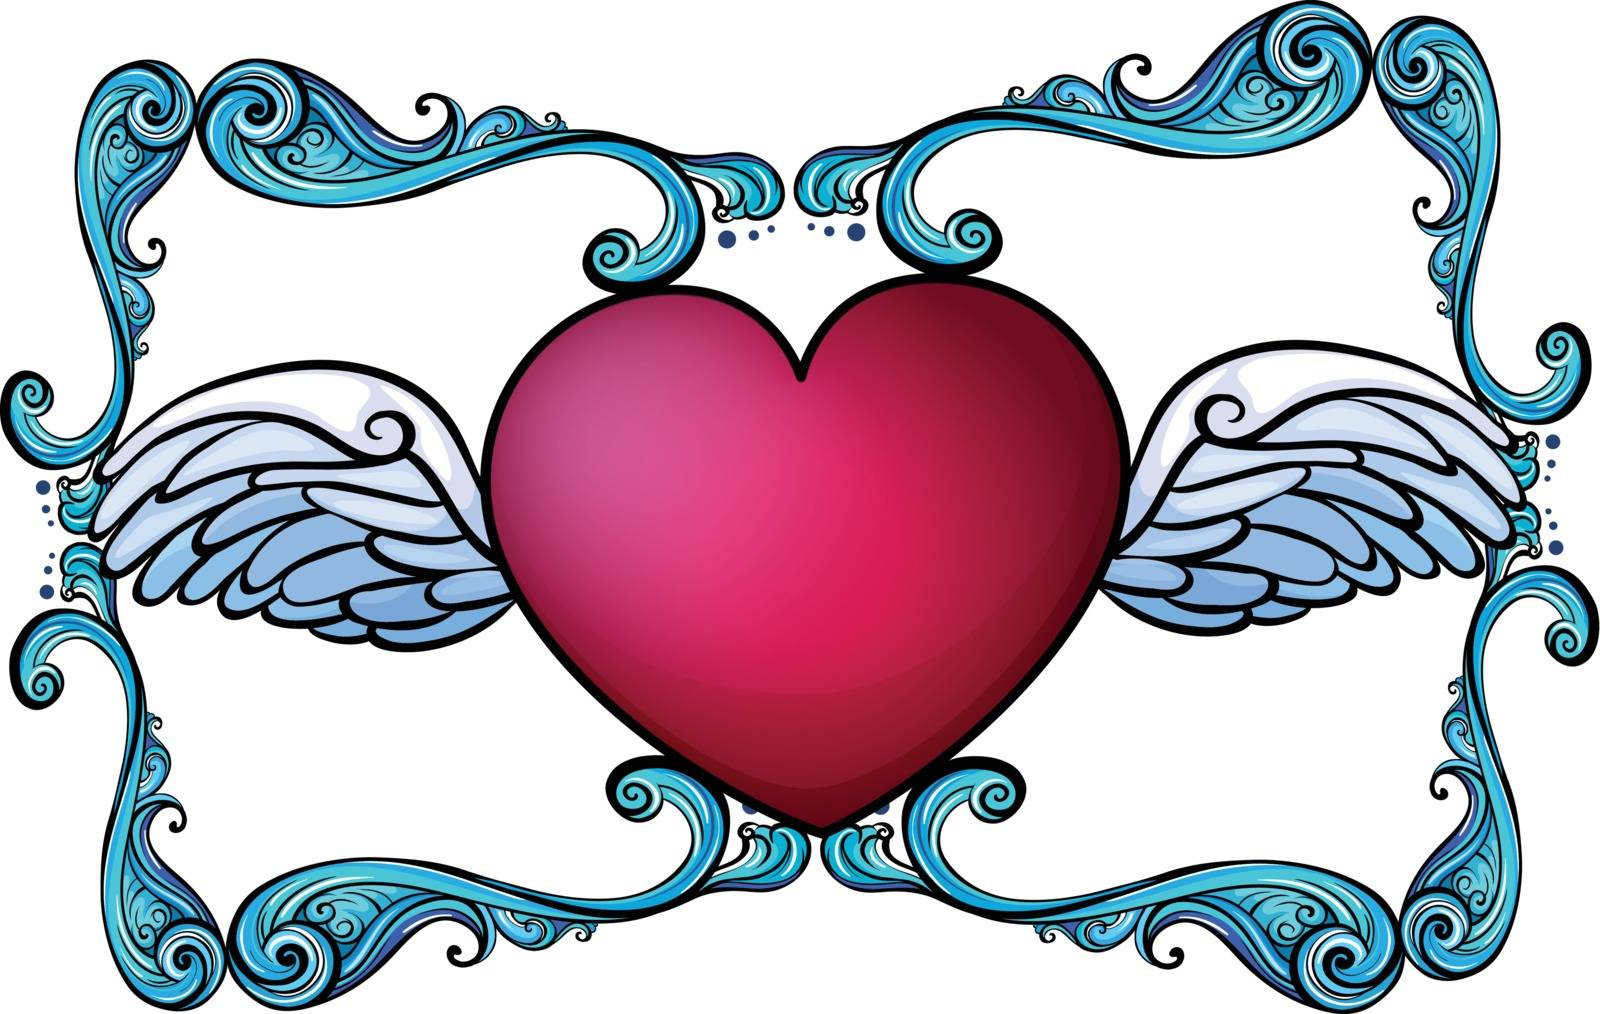 Illustration of a heart decor on a white background